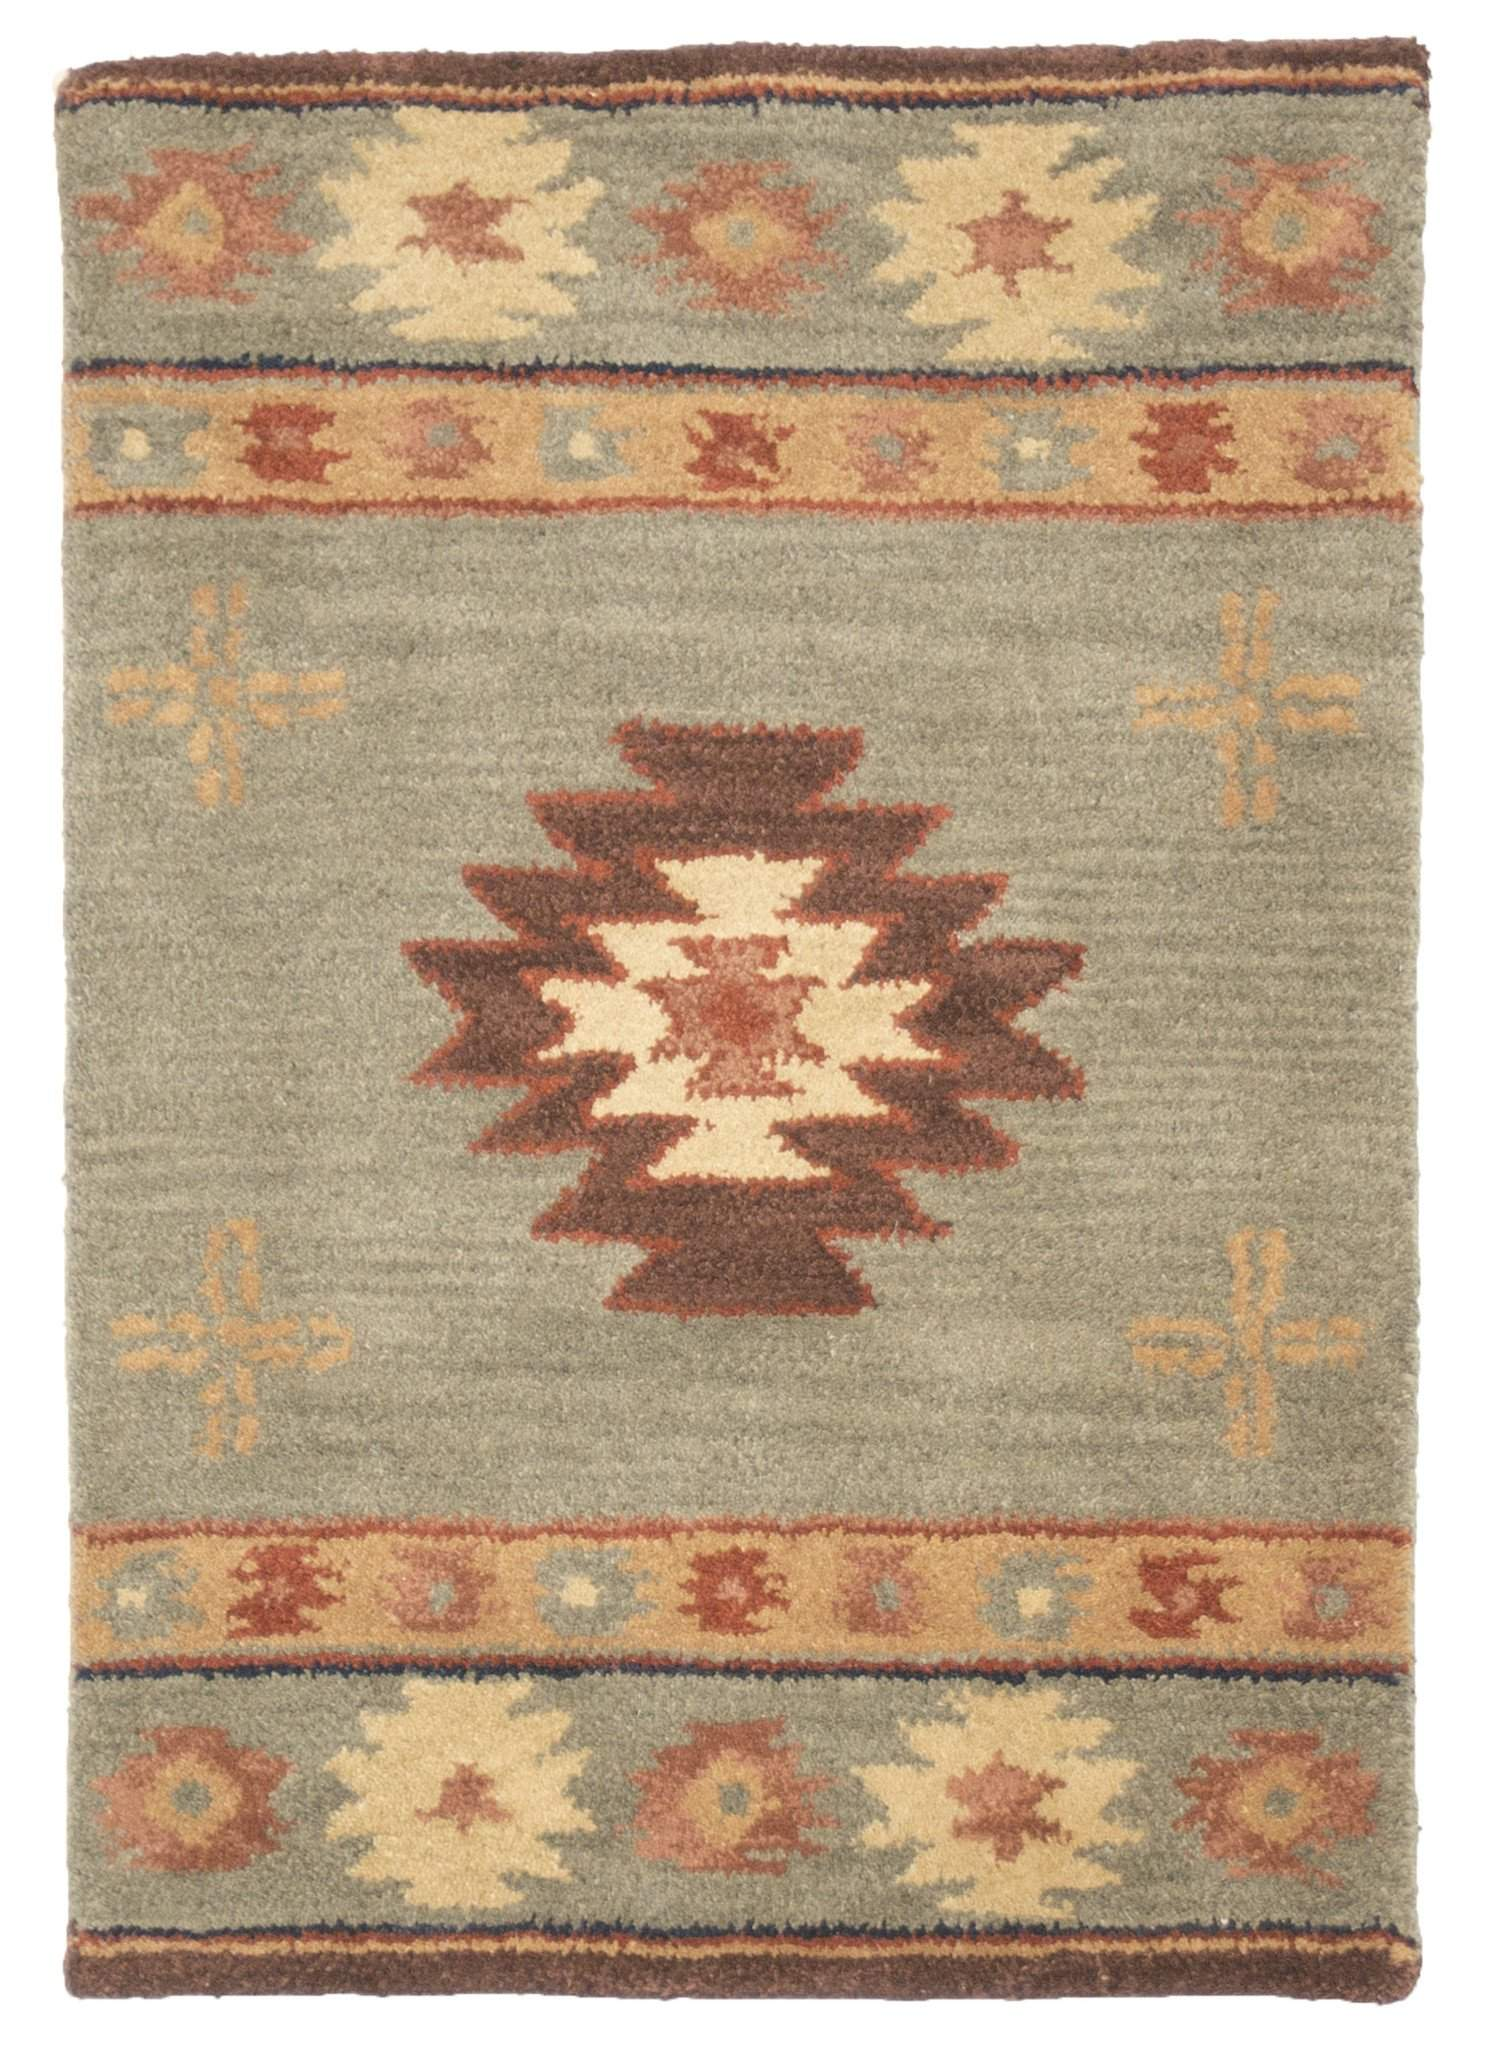 2' x 3' Southwestern Wool Small Rug-Area Rugs-Rug Shop and More